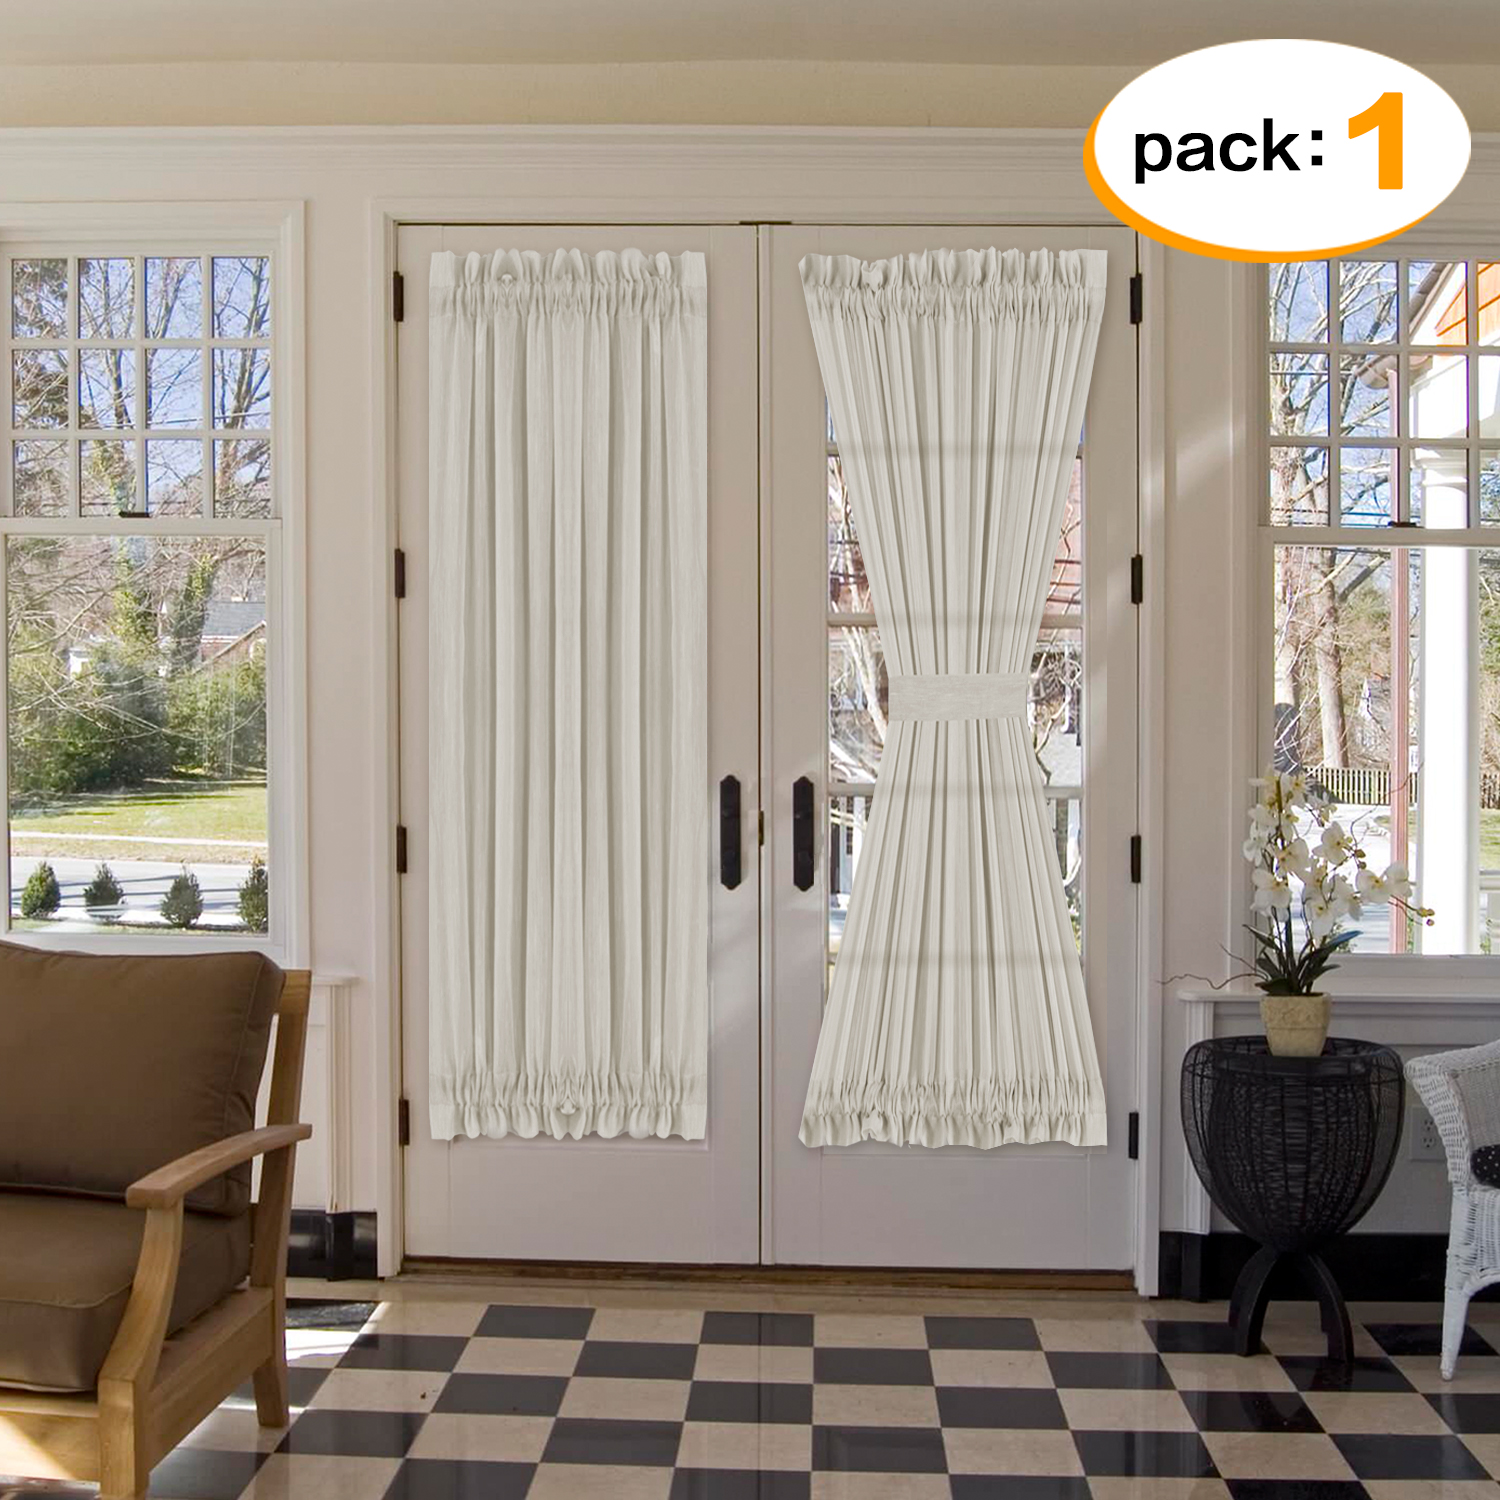 h versailtex privacy assured linen sheer curtain panel for glass door airy and breathable rod pocket top french door curtain 52 width x 72